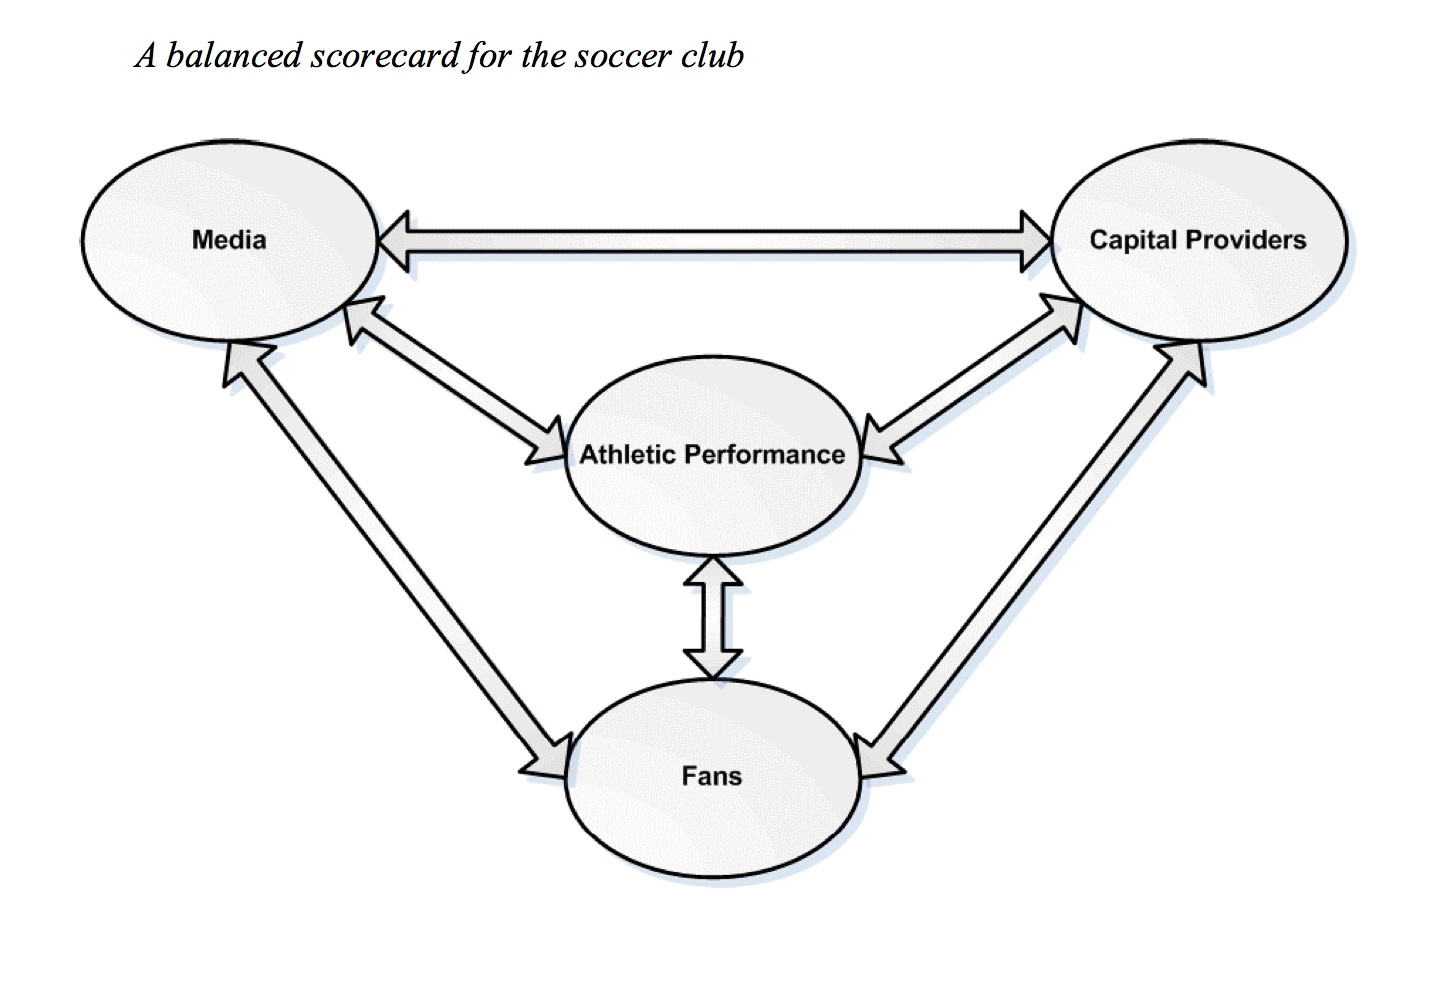 Balanced Scorecard approach to football management